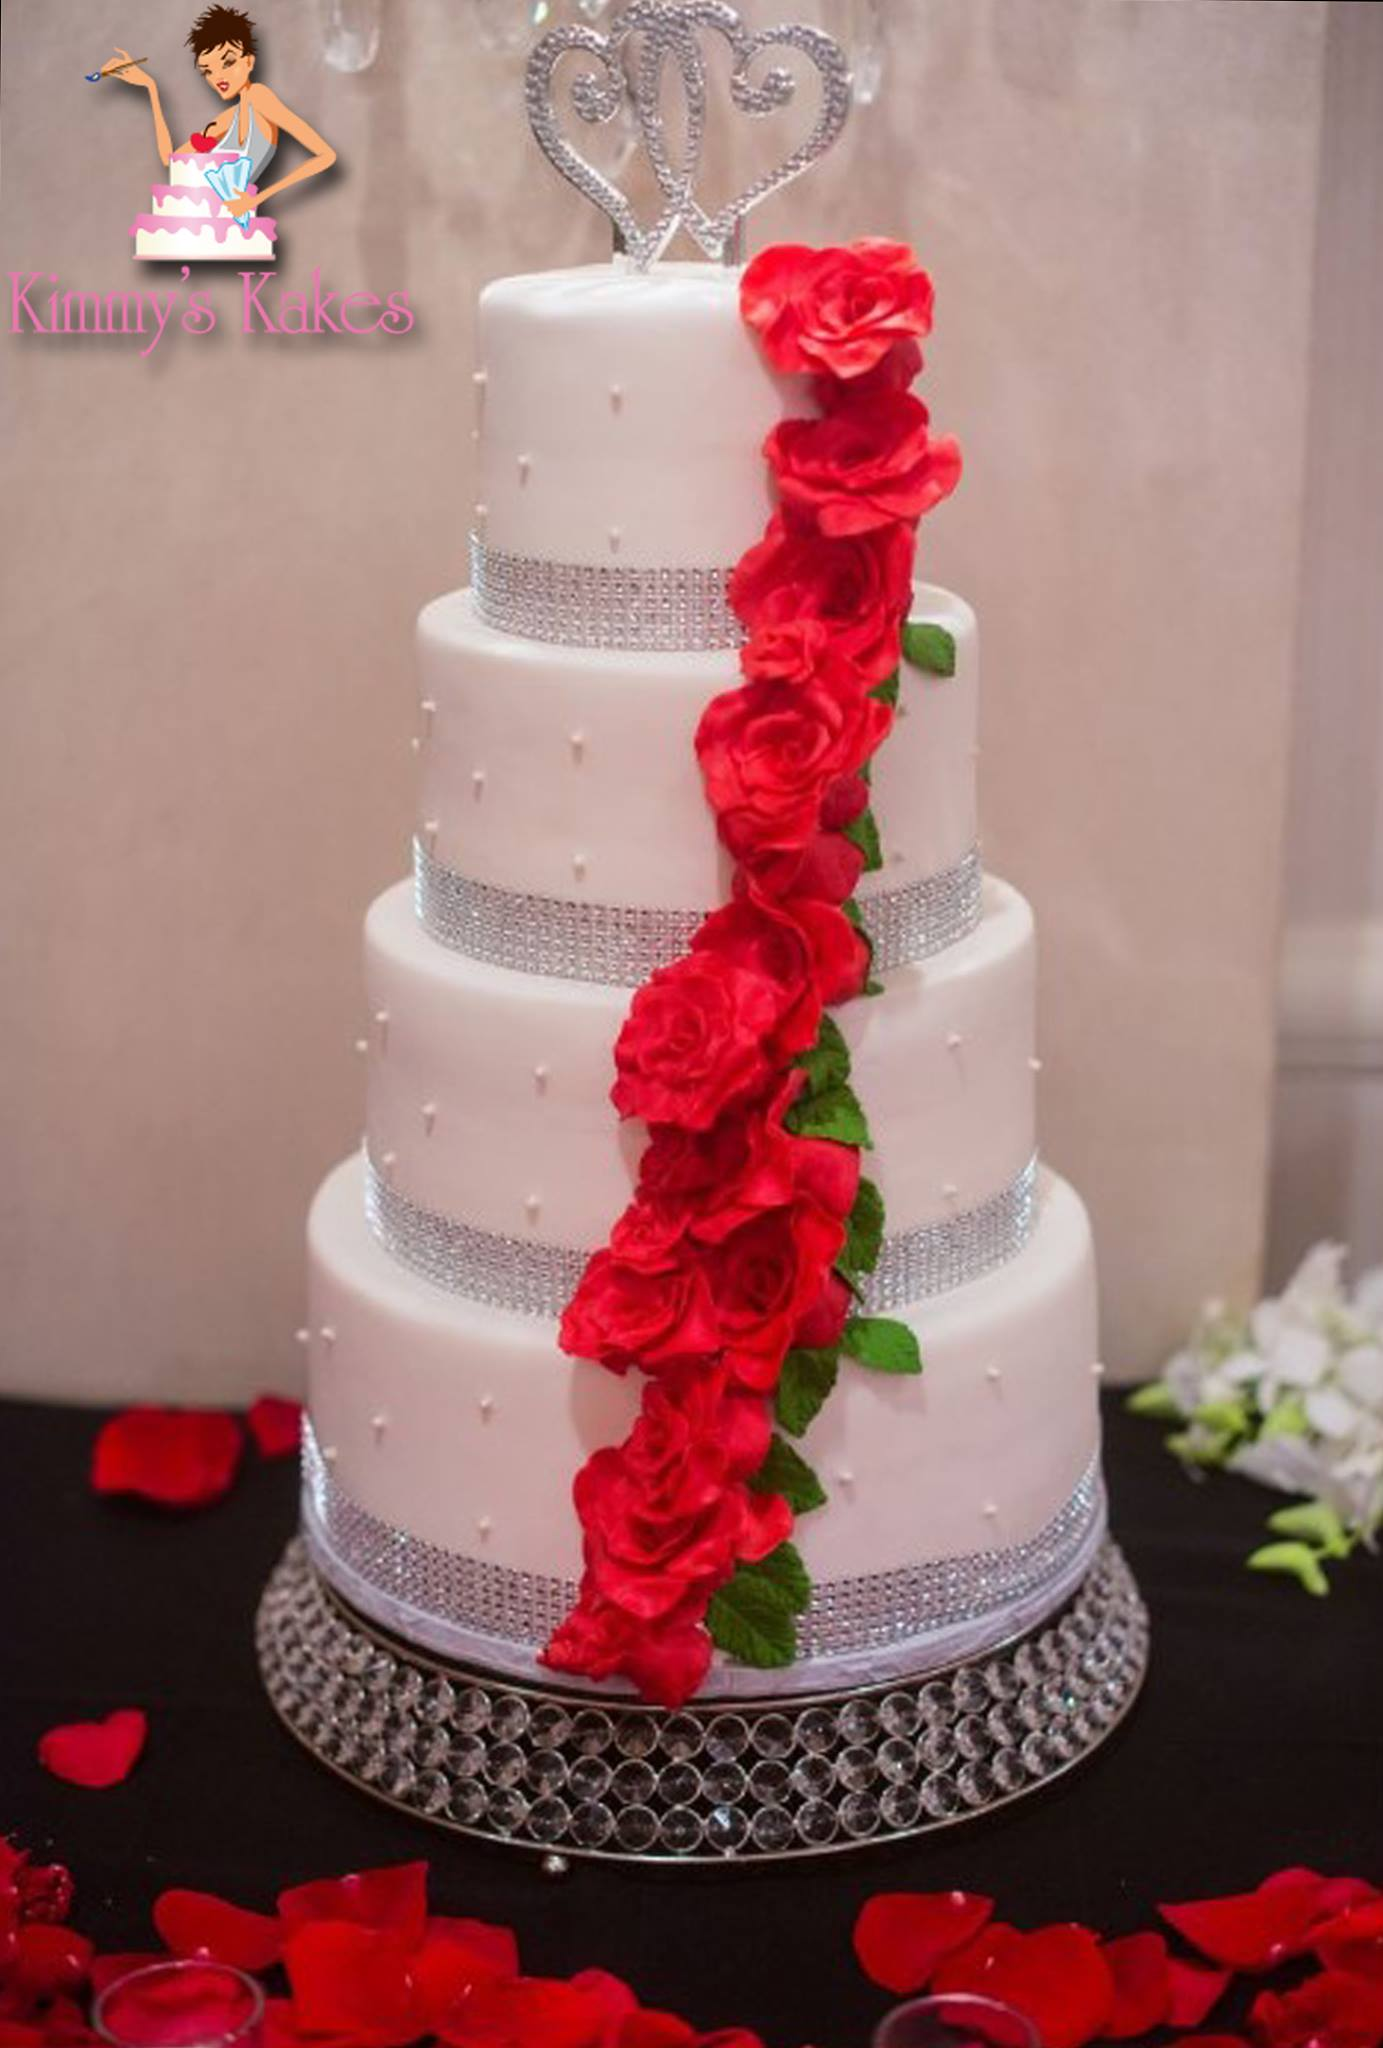 NJ Wedding Cake Maker   Kimmy s Kakes Professional Custom Cake Design Abby C   NJ